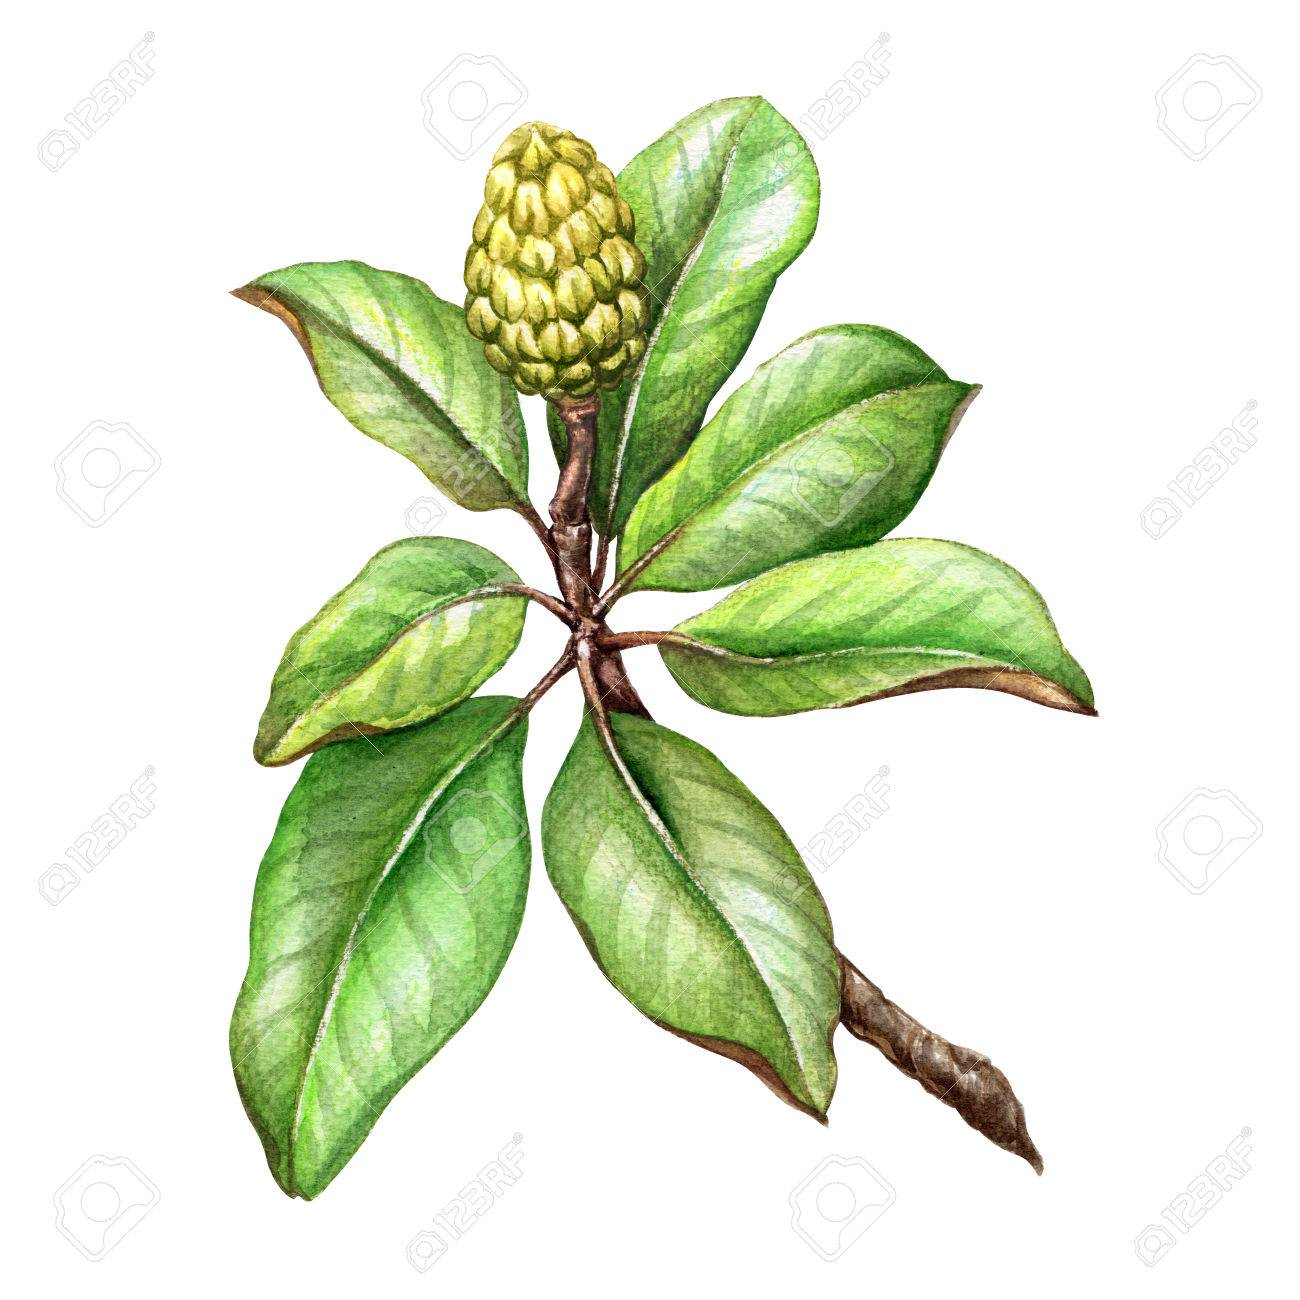 Watercolor Illustration Magnolia Tree Green Leaves Floral Stock